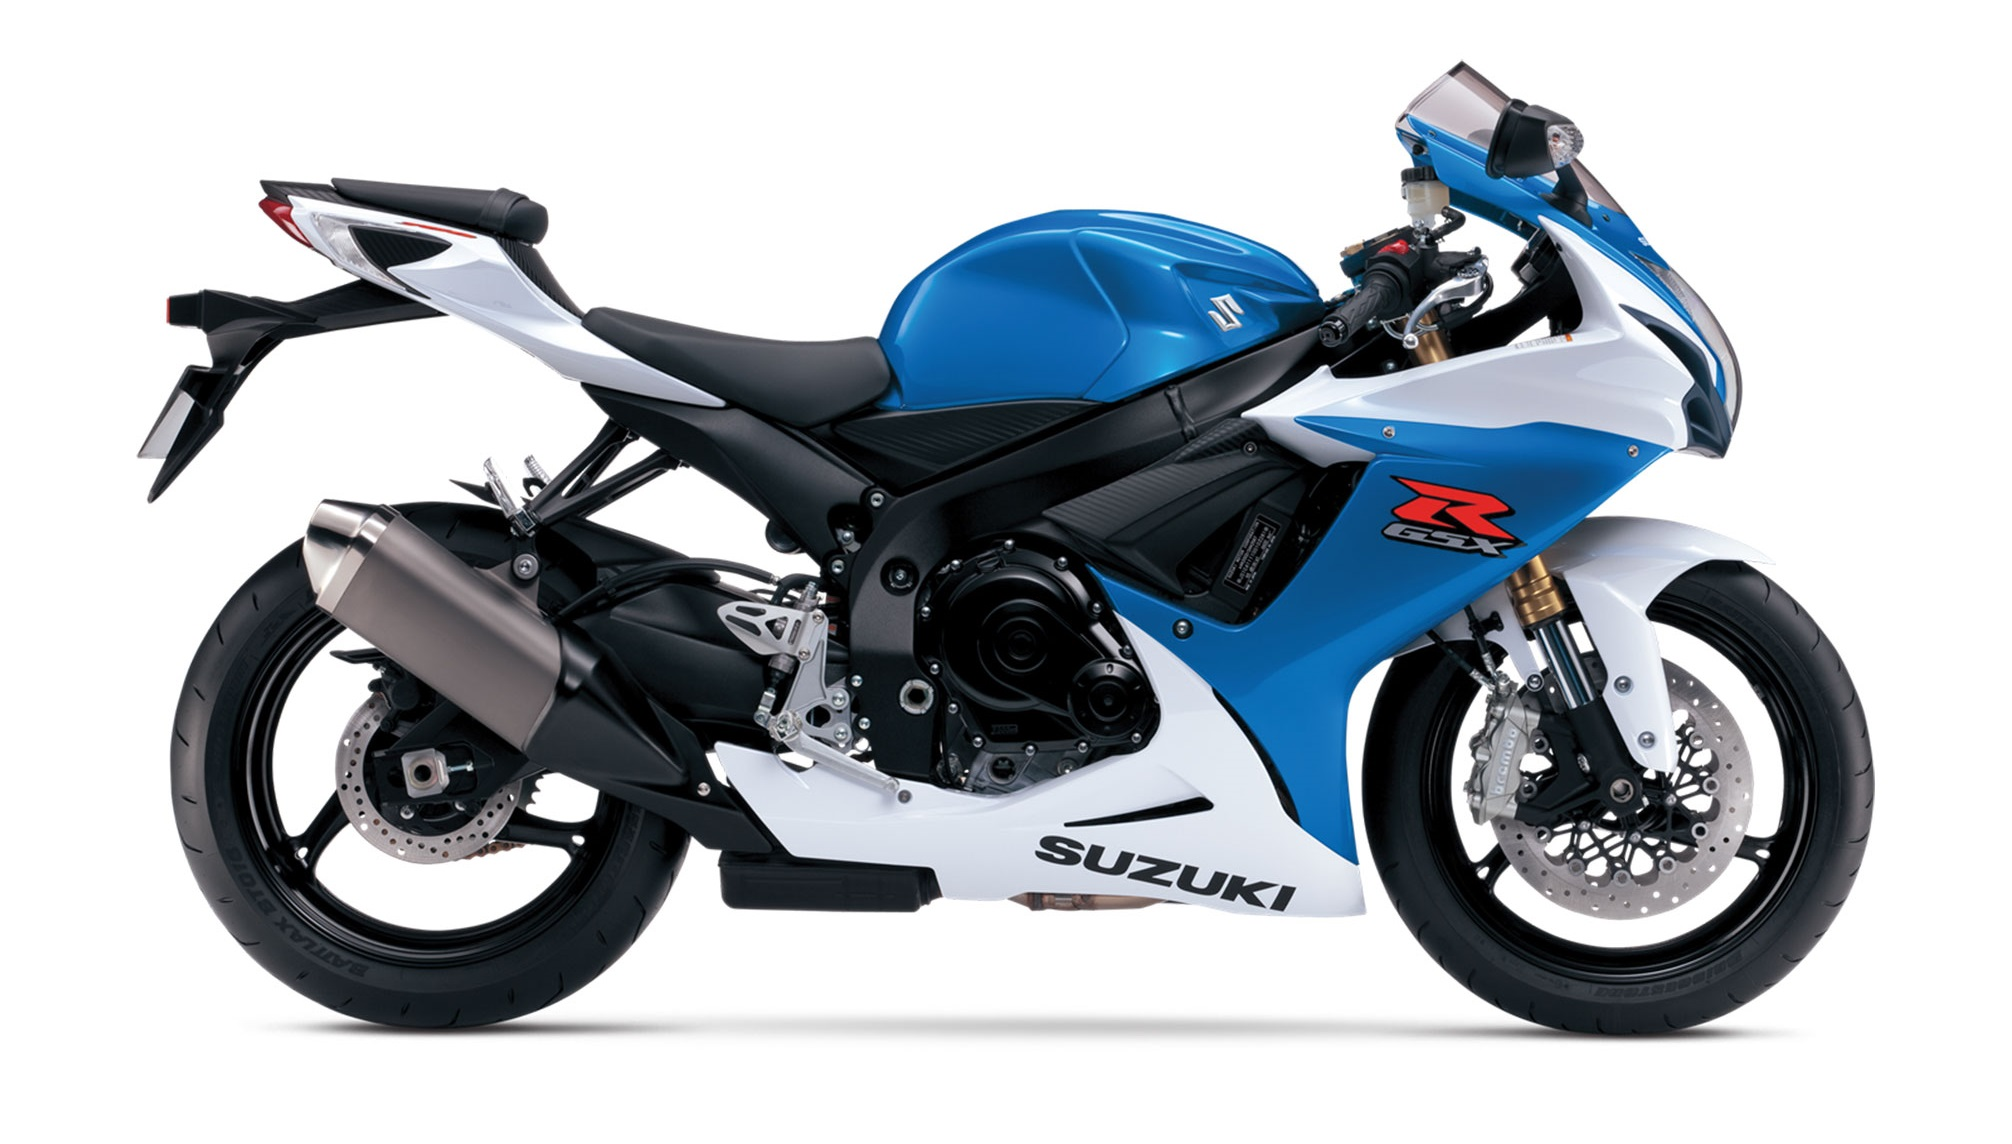 suzuki gsx r 750 fiche technique avis et prix la. Black Bedroom Furniture Sets. Home Design Ideas